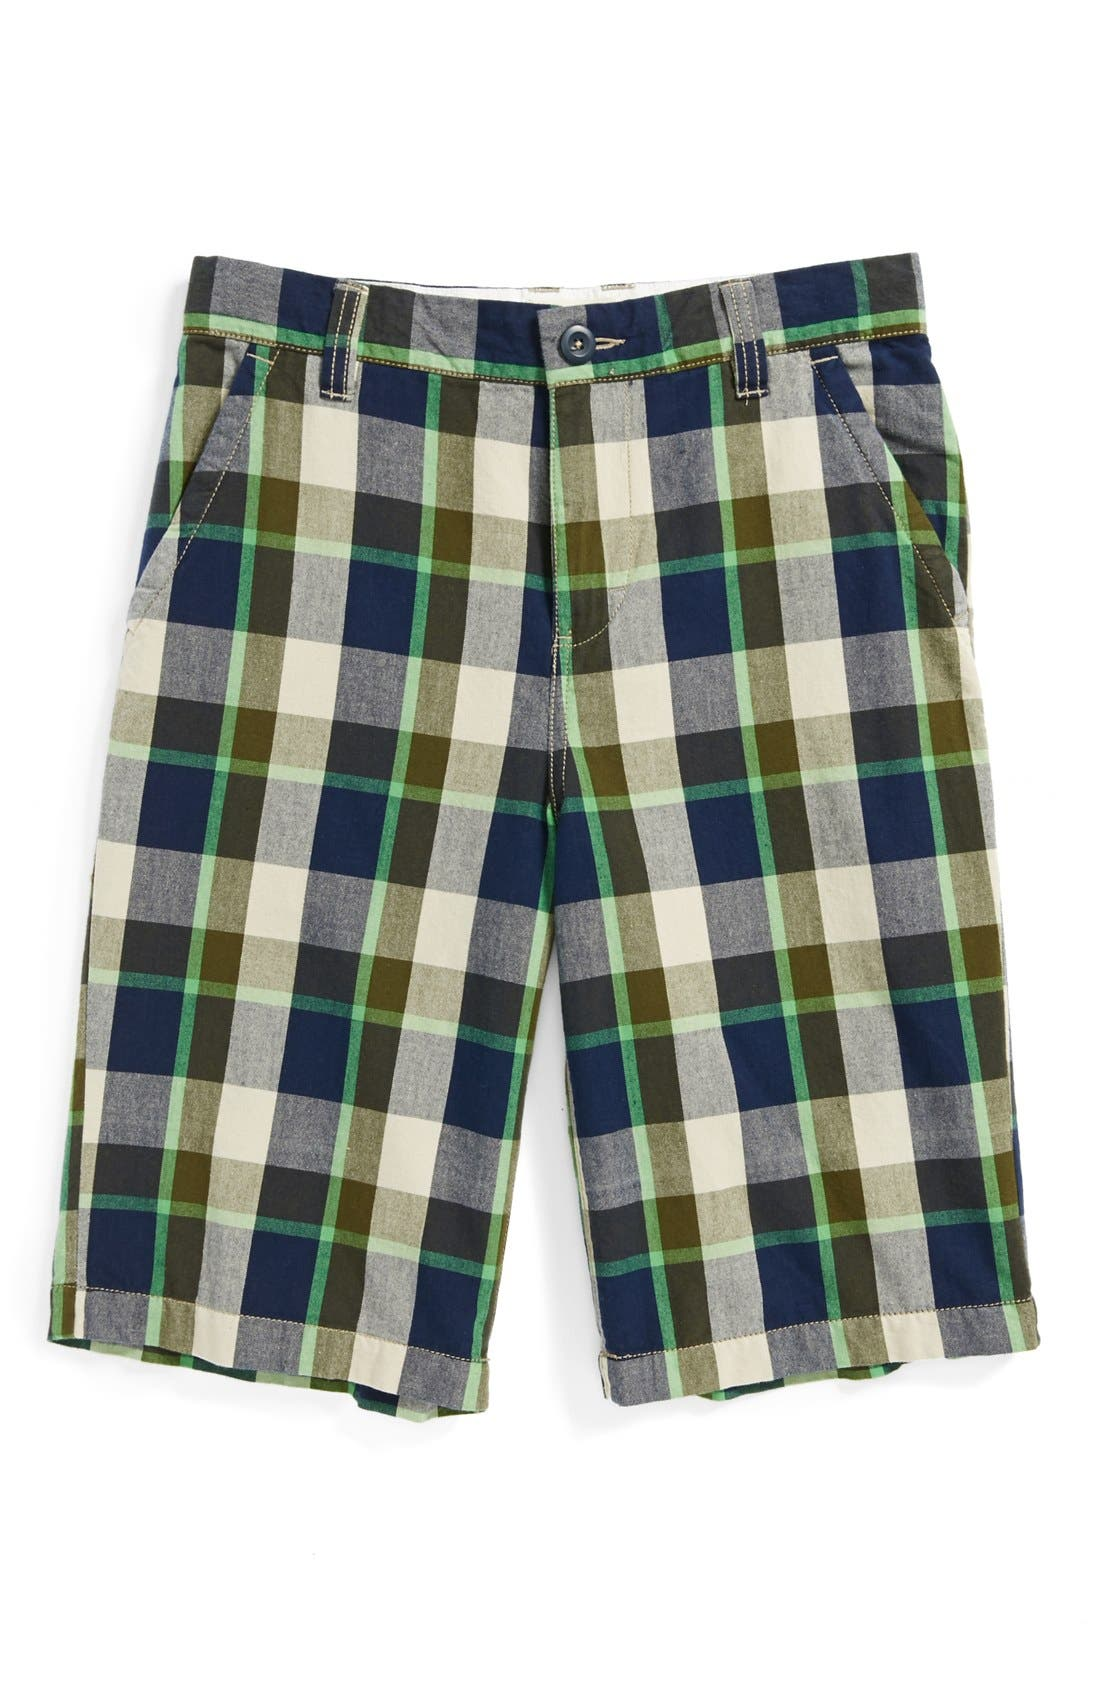 Alternate Image 1 Selected - Tucker + Tate 'Arthur' Shorts (Big Boys)